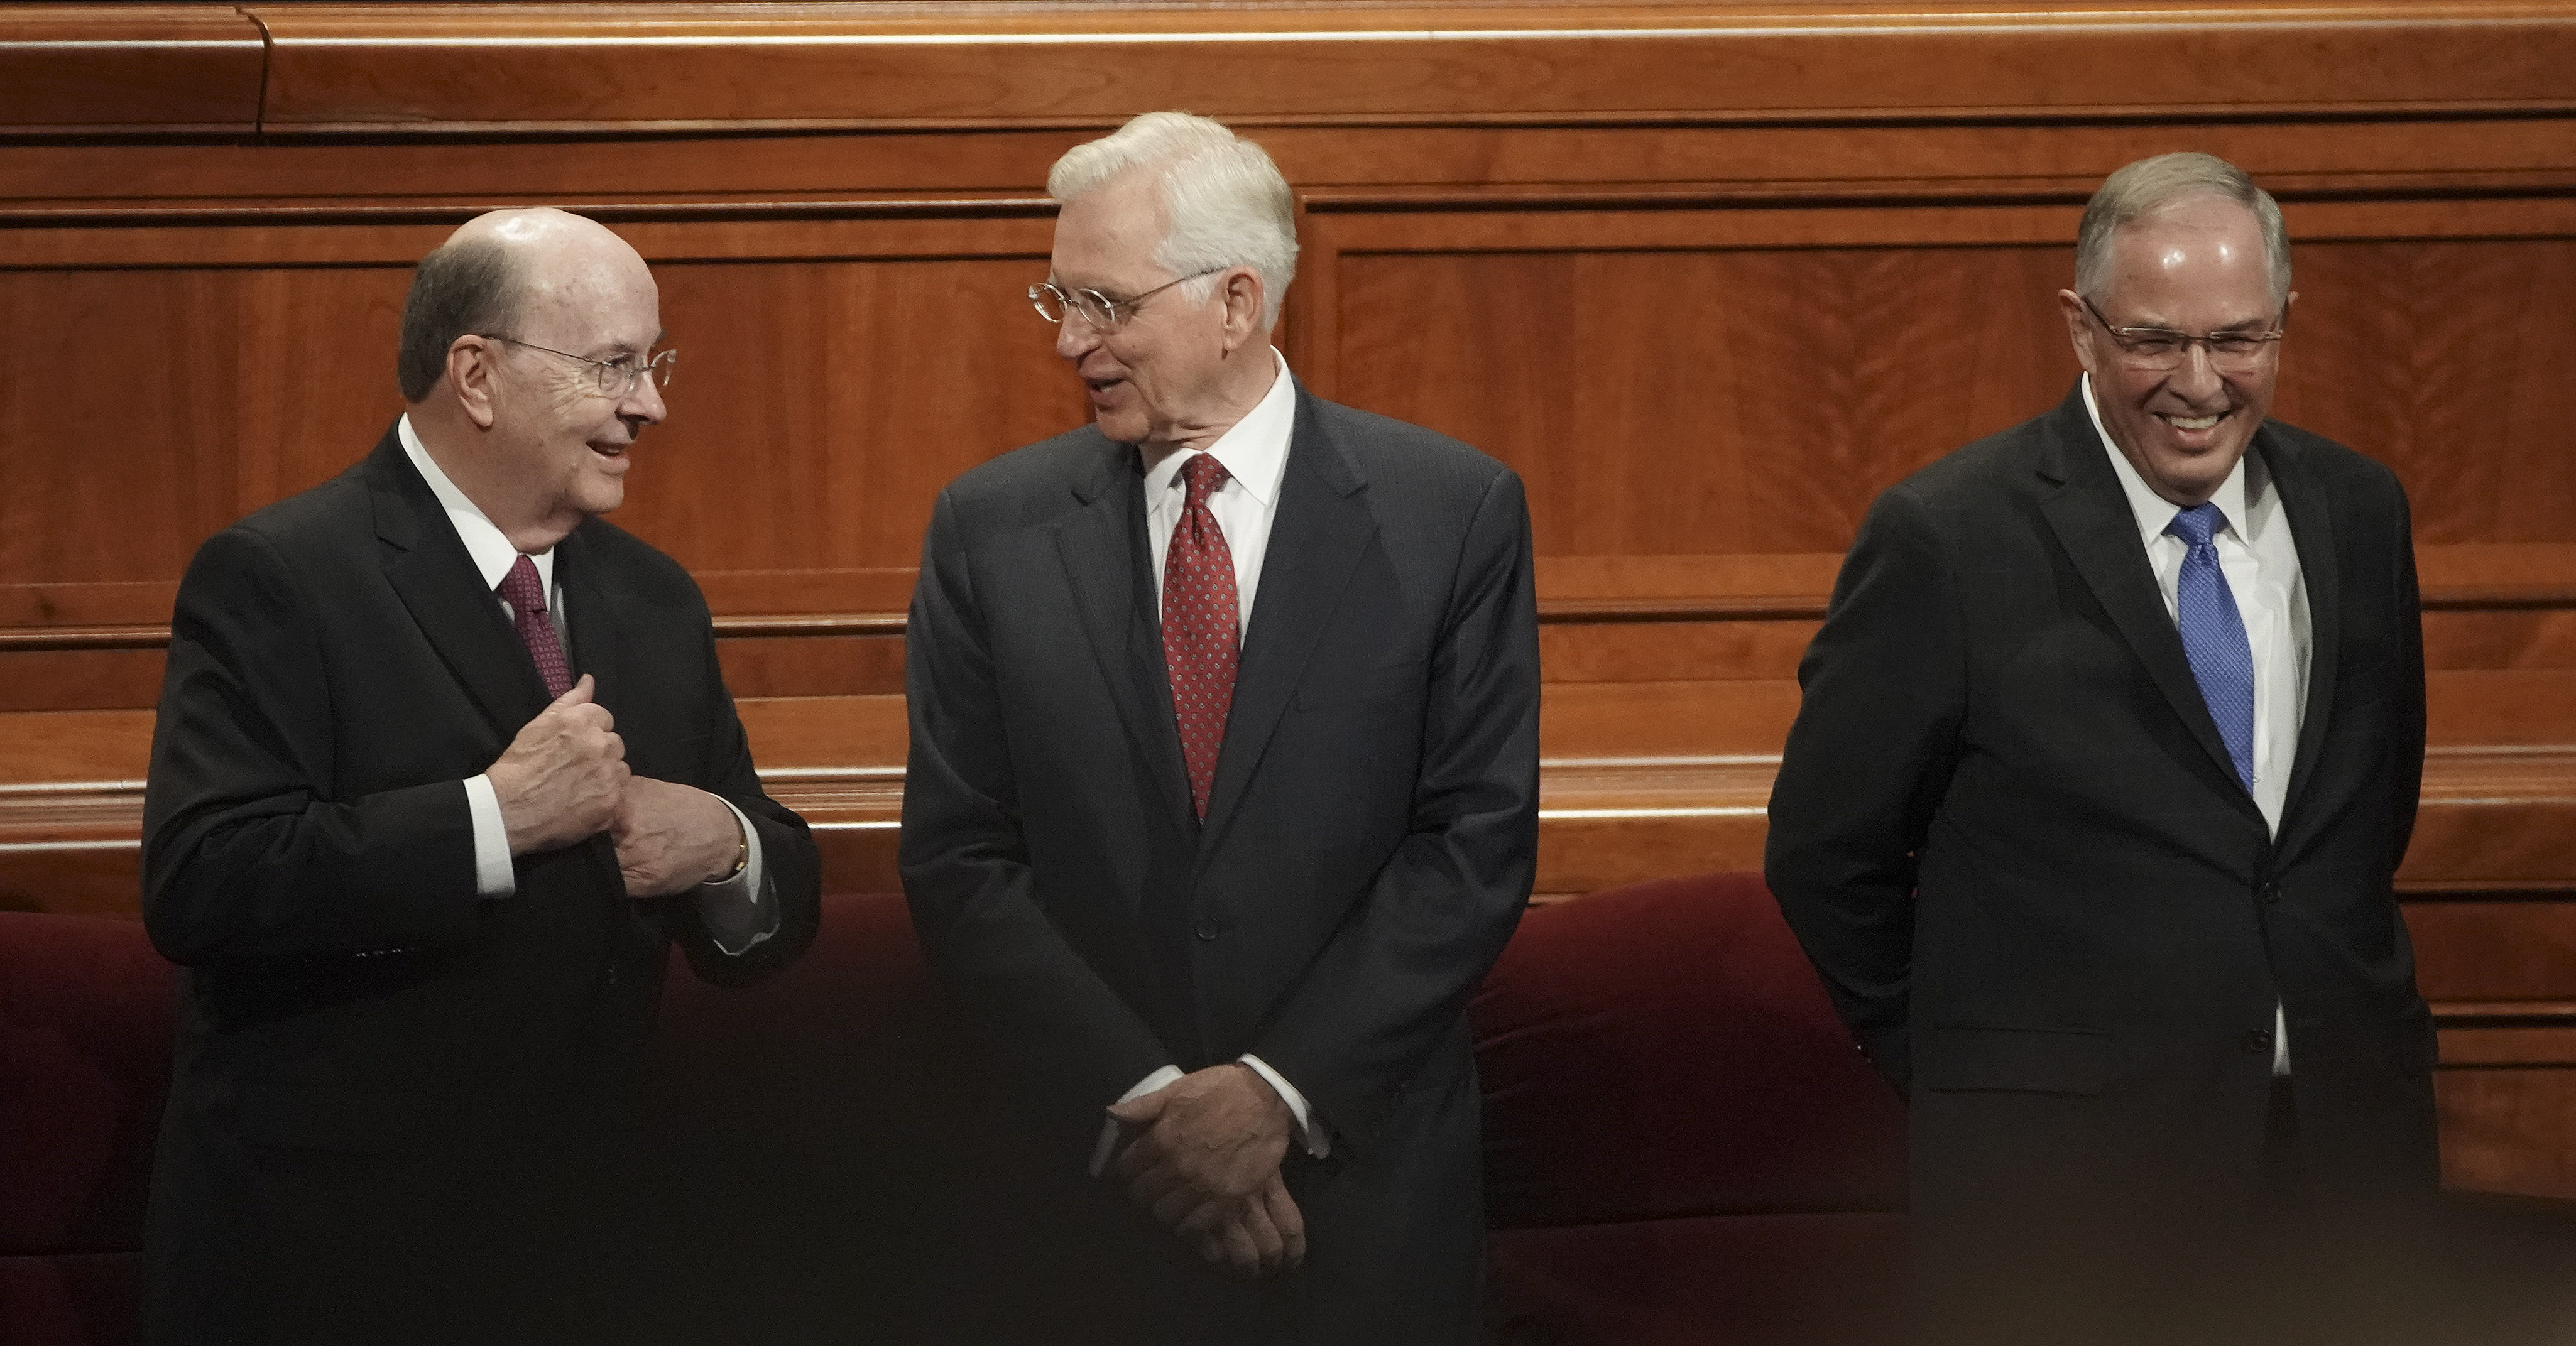 Elder Quentin L. Cook, left, Elder D. Todd Christofferson and Elder Neil L. Andersen of the Quorum of the Twelve Apostles talk prior to the Sunday morning session of the 189th Semiannual General Conference of The Church of Jesus Christ of Latter-day Saints in the Conference Center in Salt Lake City on Sunday, Oct. 6, 2019.